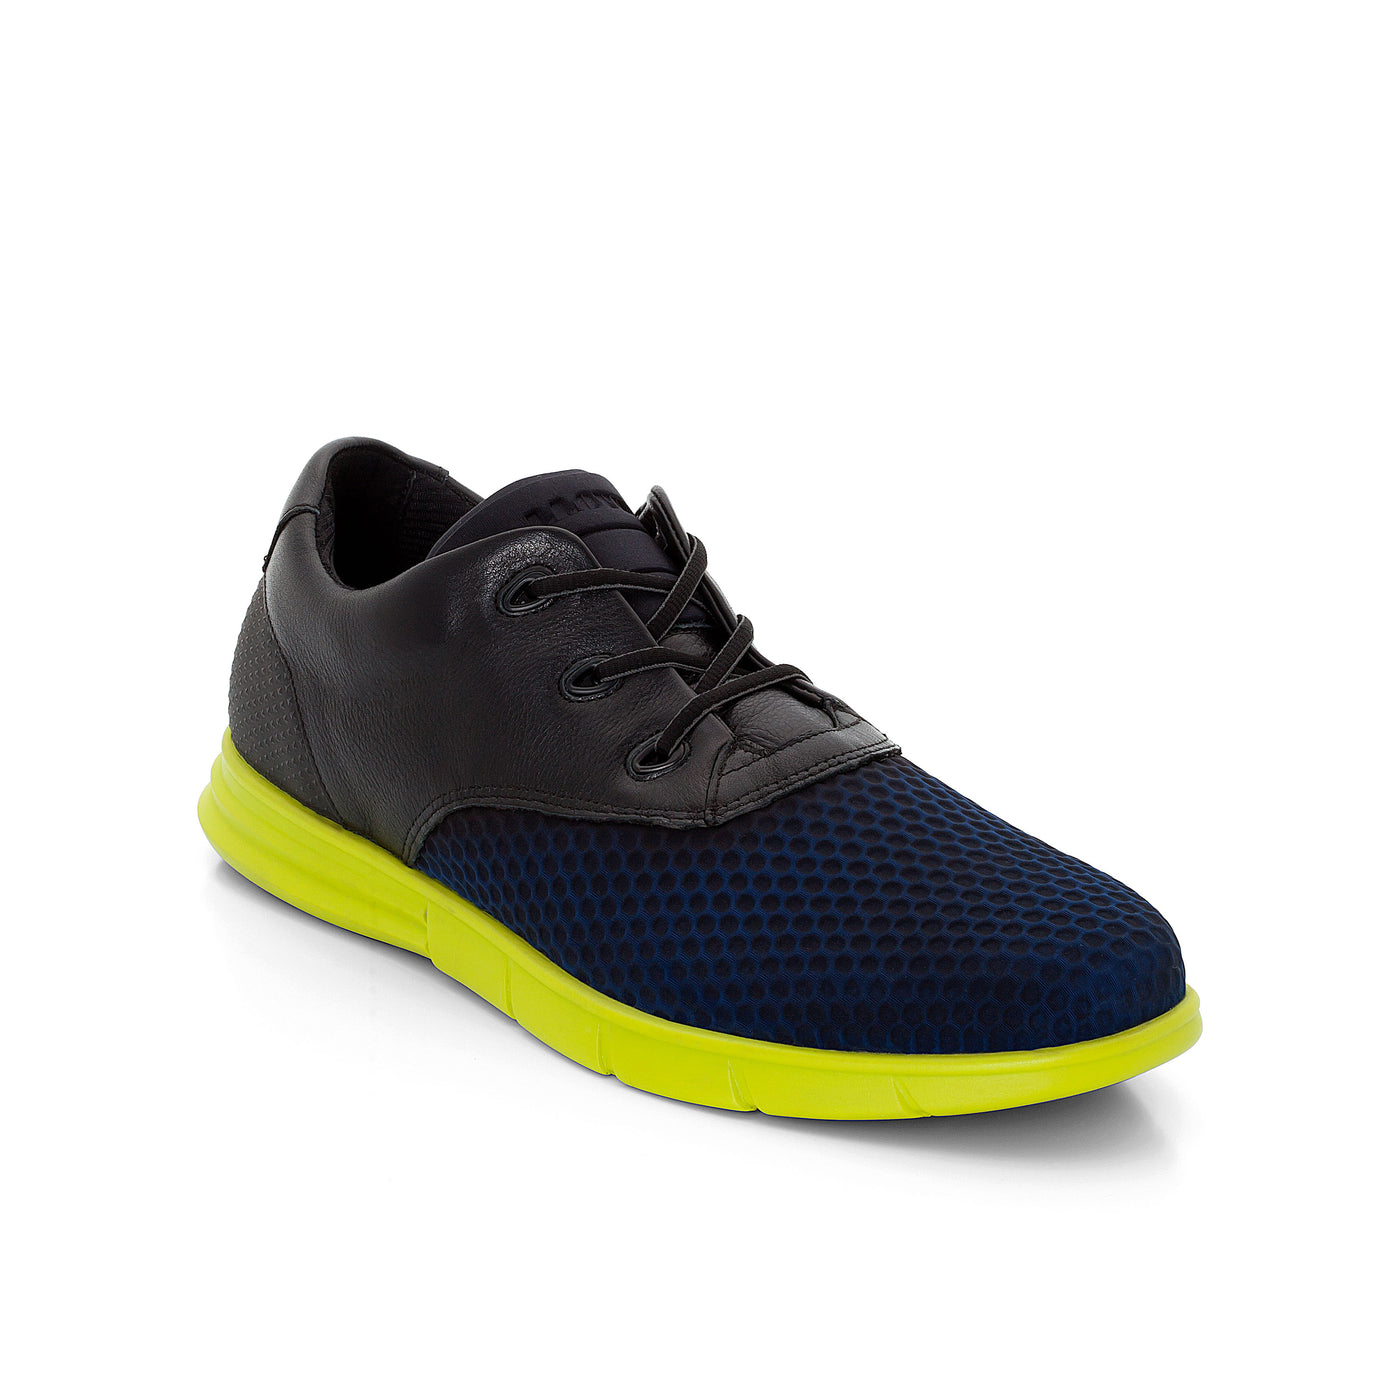 ALANO,SHOES,Lloyd, | GentRow.com